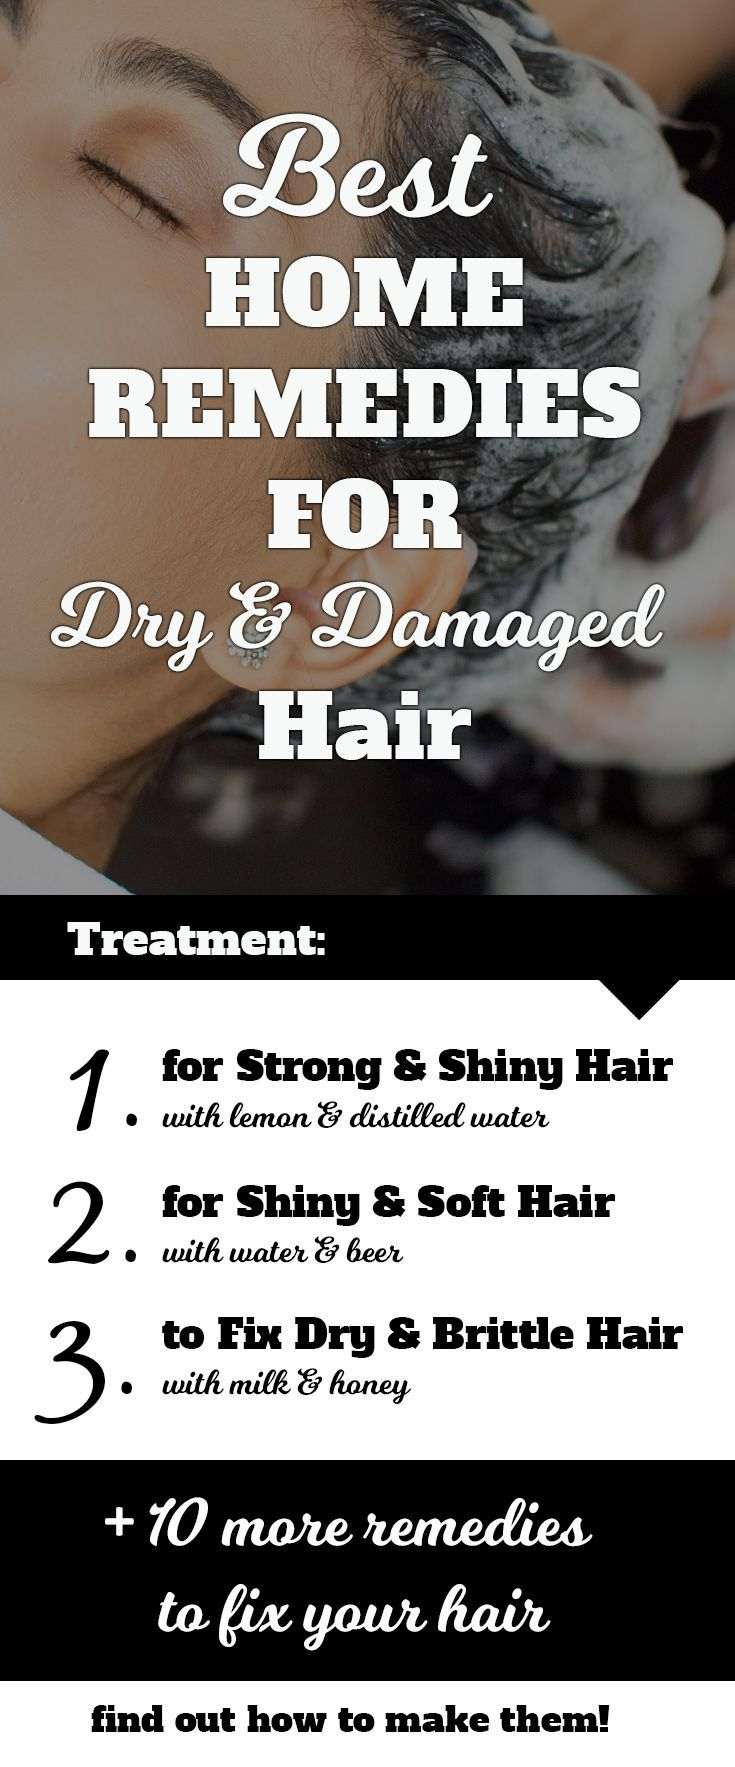 13 Best Home Remedies to Fix Dry & Damaged Hair. Make your own hair strenghtening treatment to enjoy strong and shiny hair, add softness to your hair and more. Affordable and easy to make home treatments to repair damaged hair. #hair #beauty #haircare